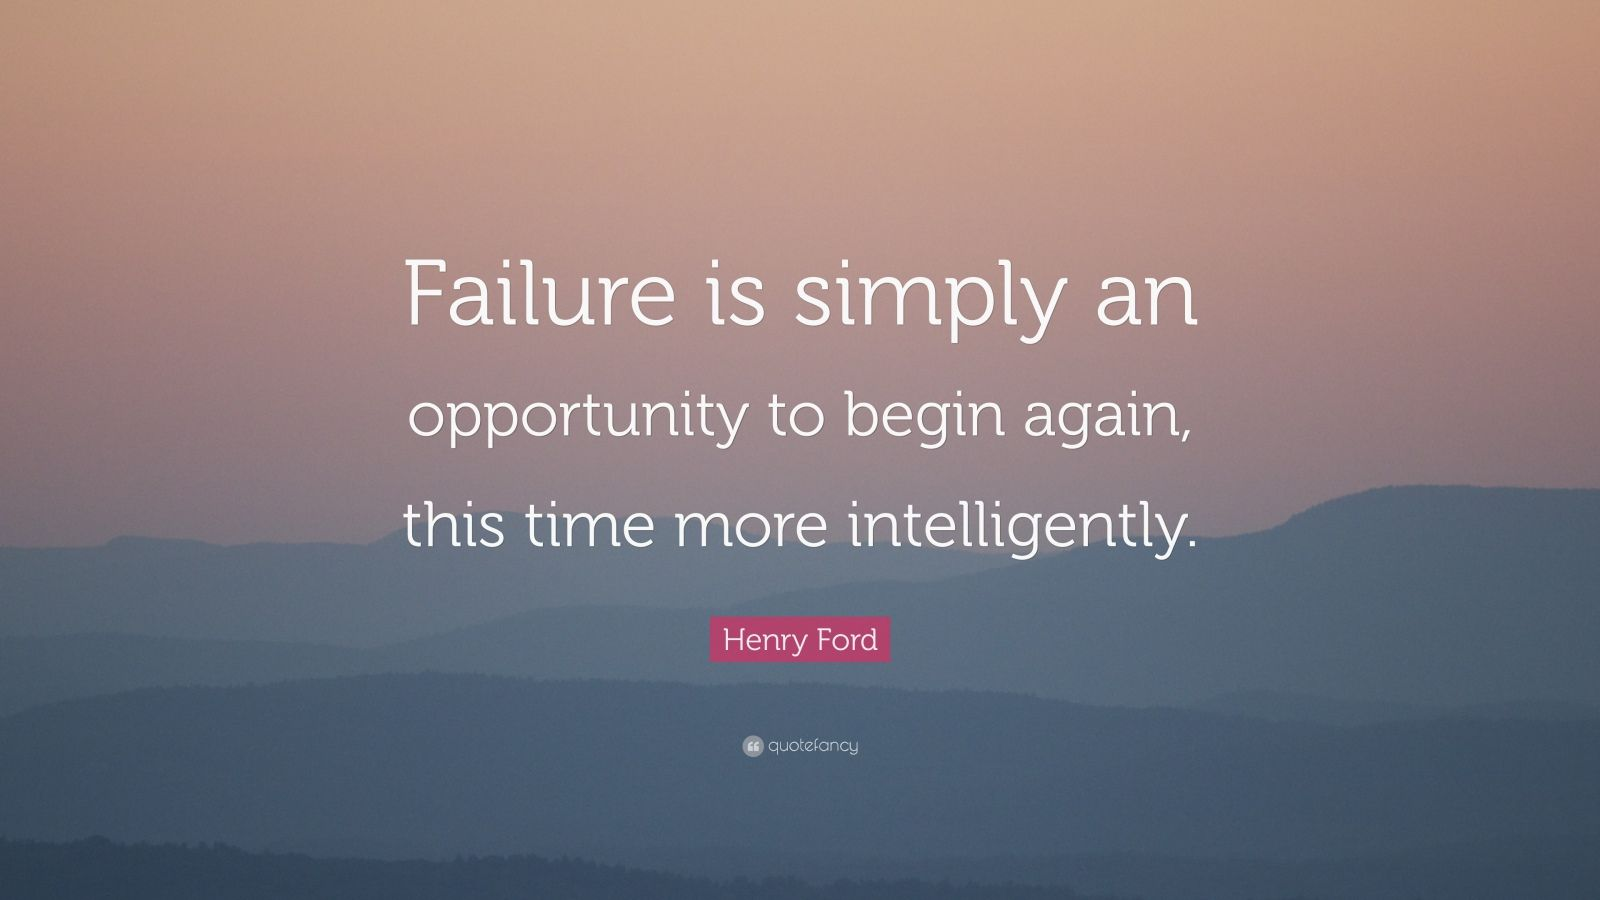 Wallpaper Love Failure Quotes : Henry Ford Quotes (34 wallpapers) - Quotefancy